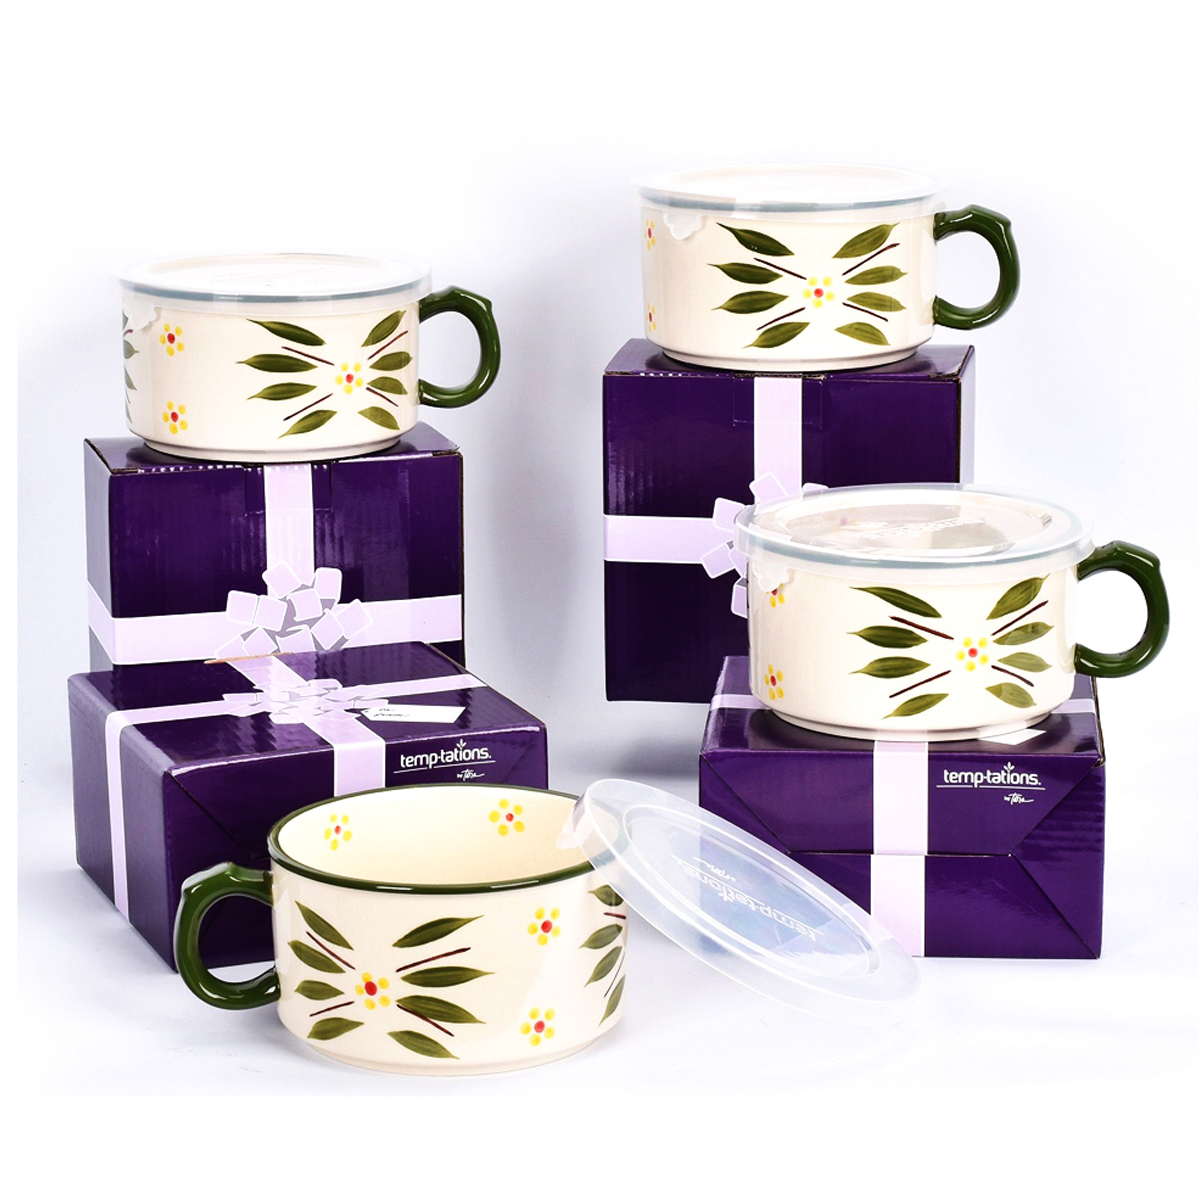 temp-tations® Old World Meal Mugs with Gift Boxes Set – 4 Piece – Green